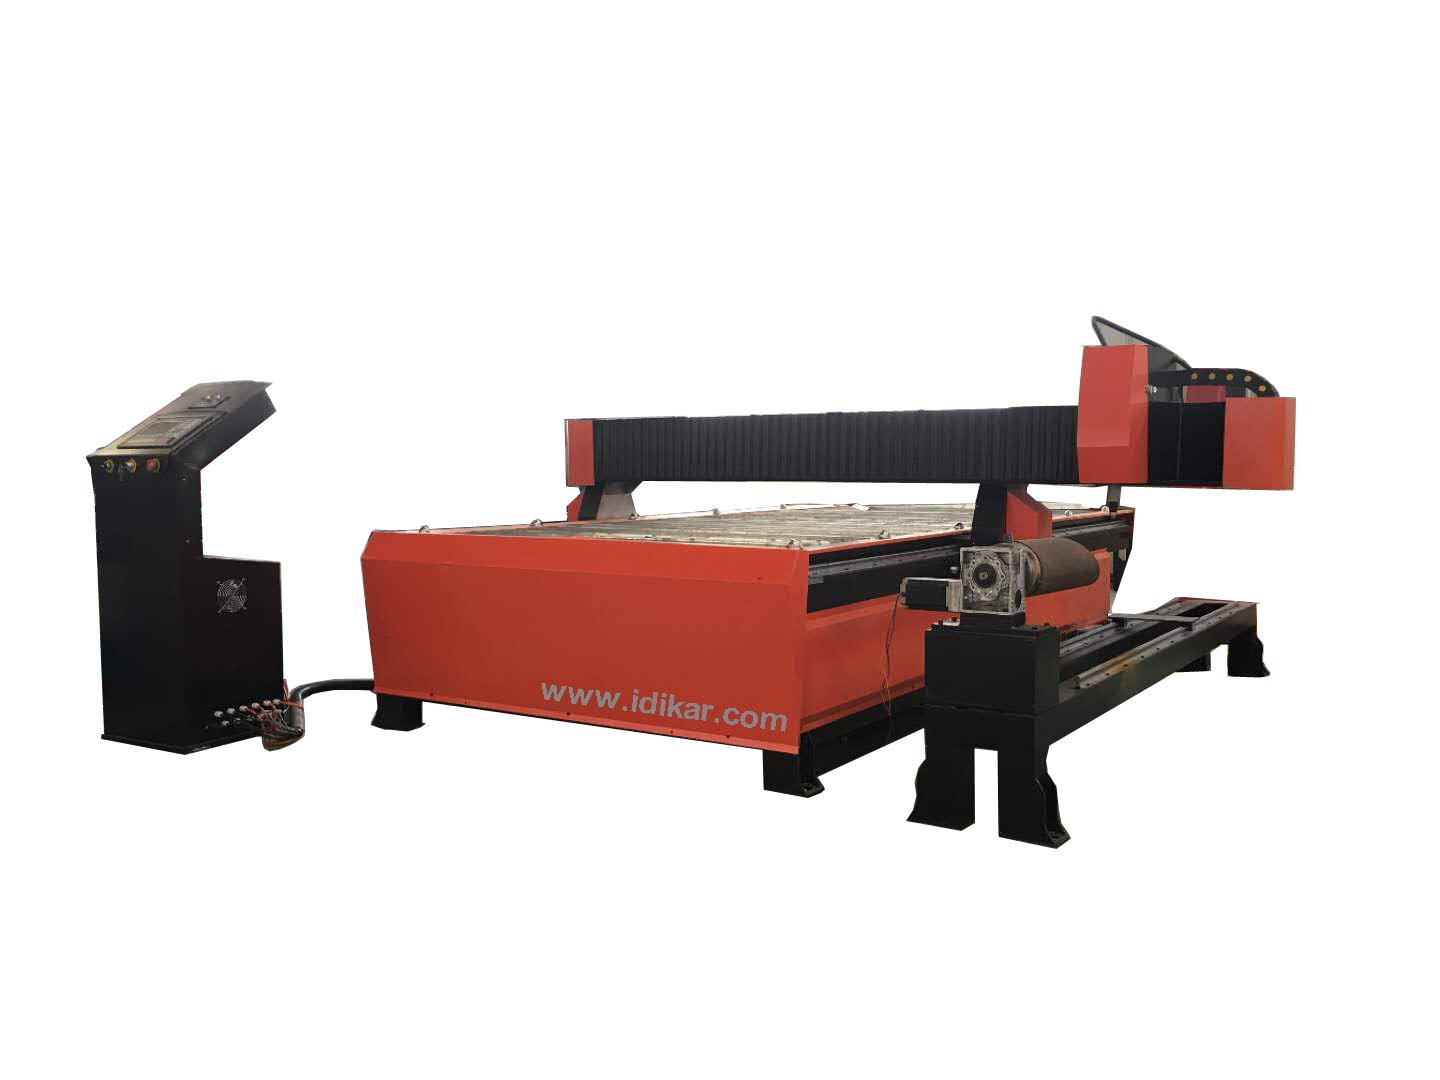 IDIKAR Faster-P Serise CNC Table Cutting machine